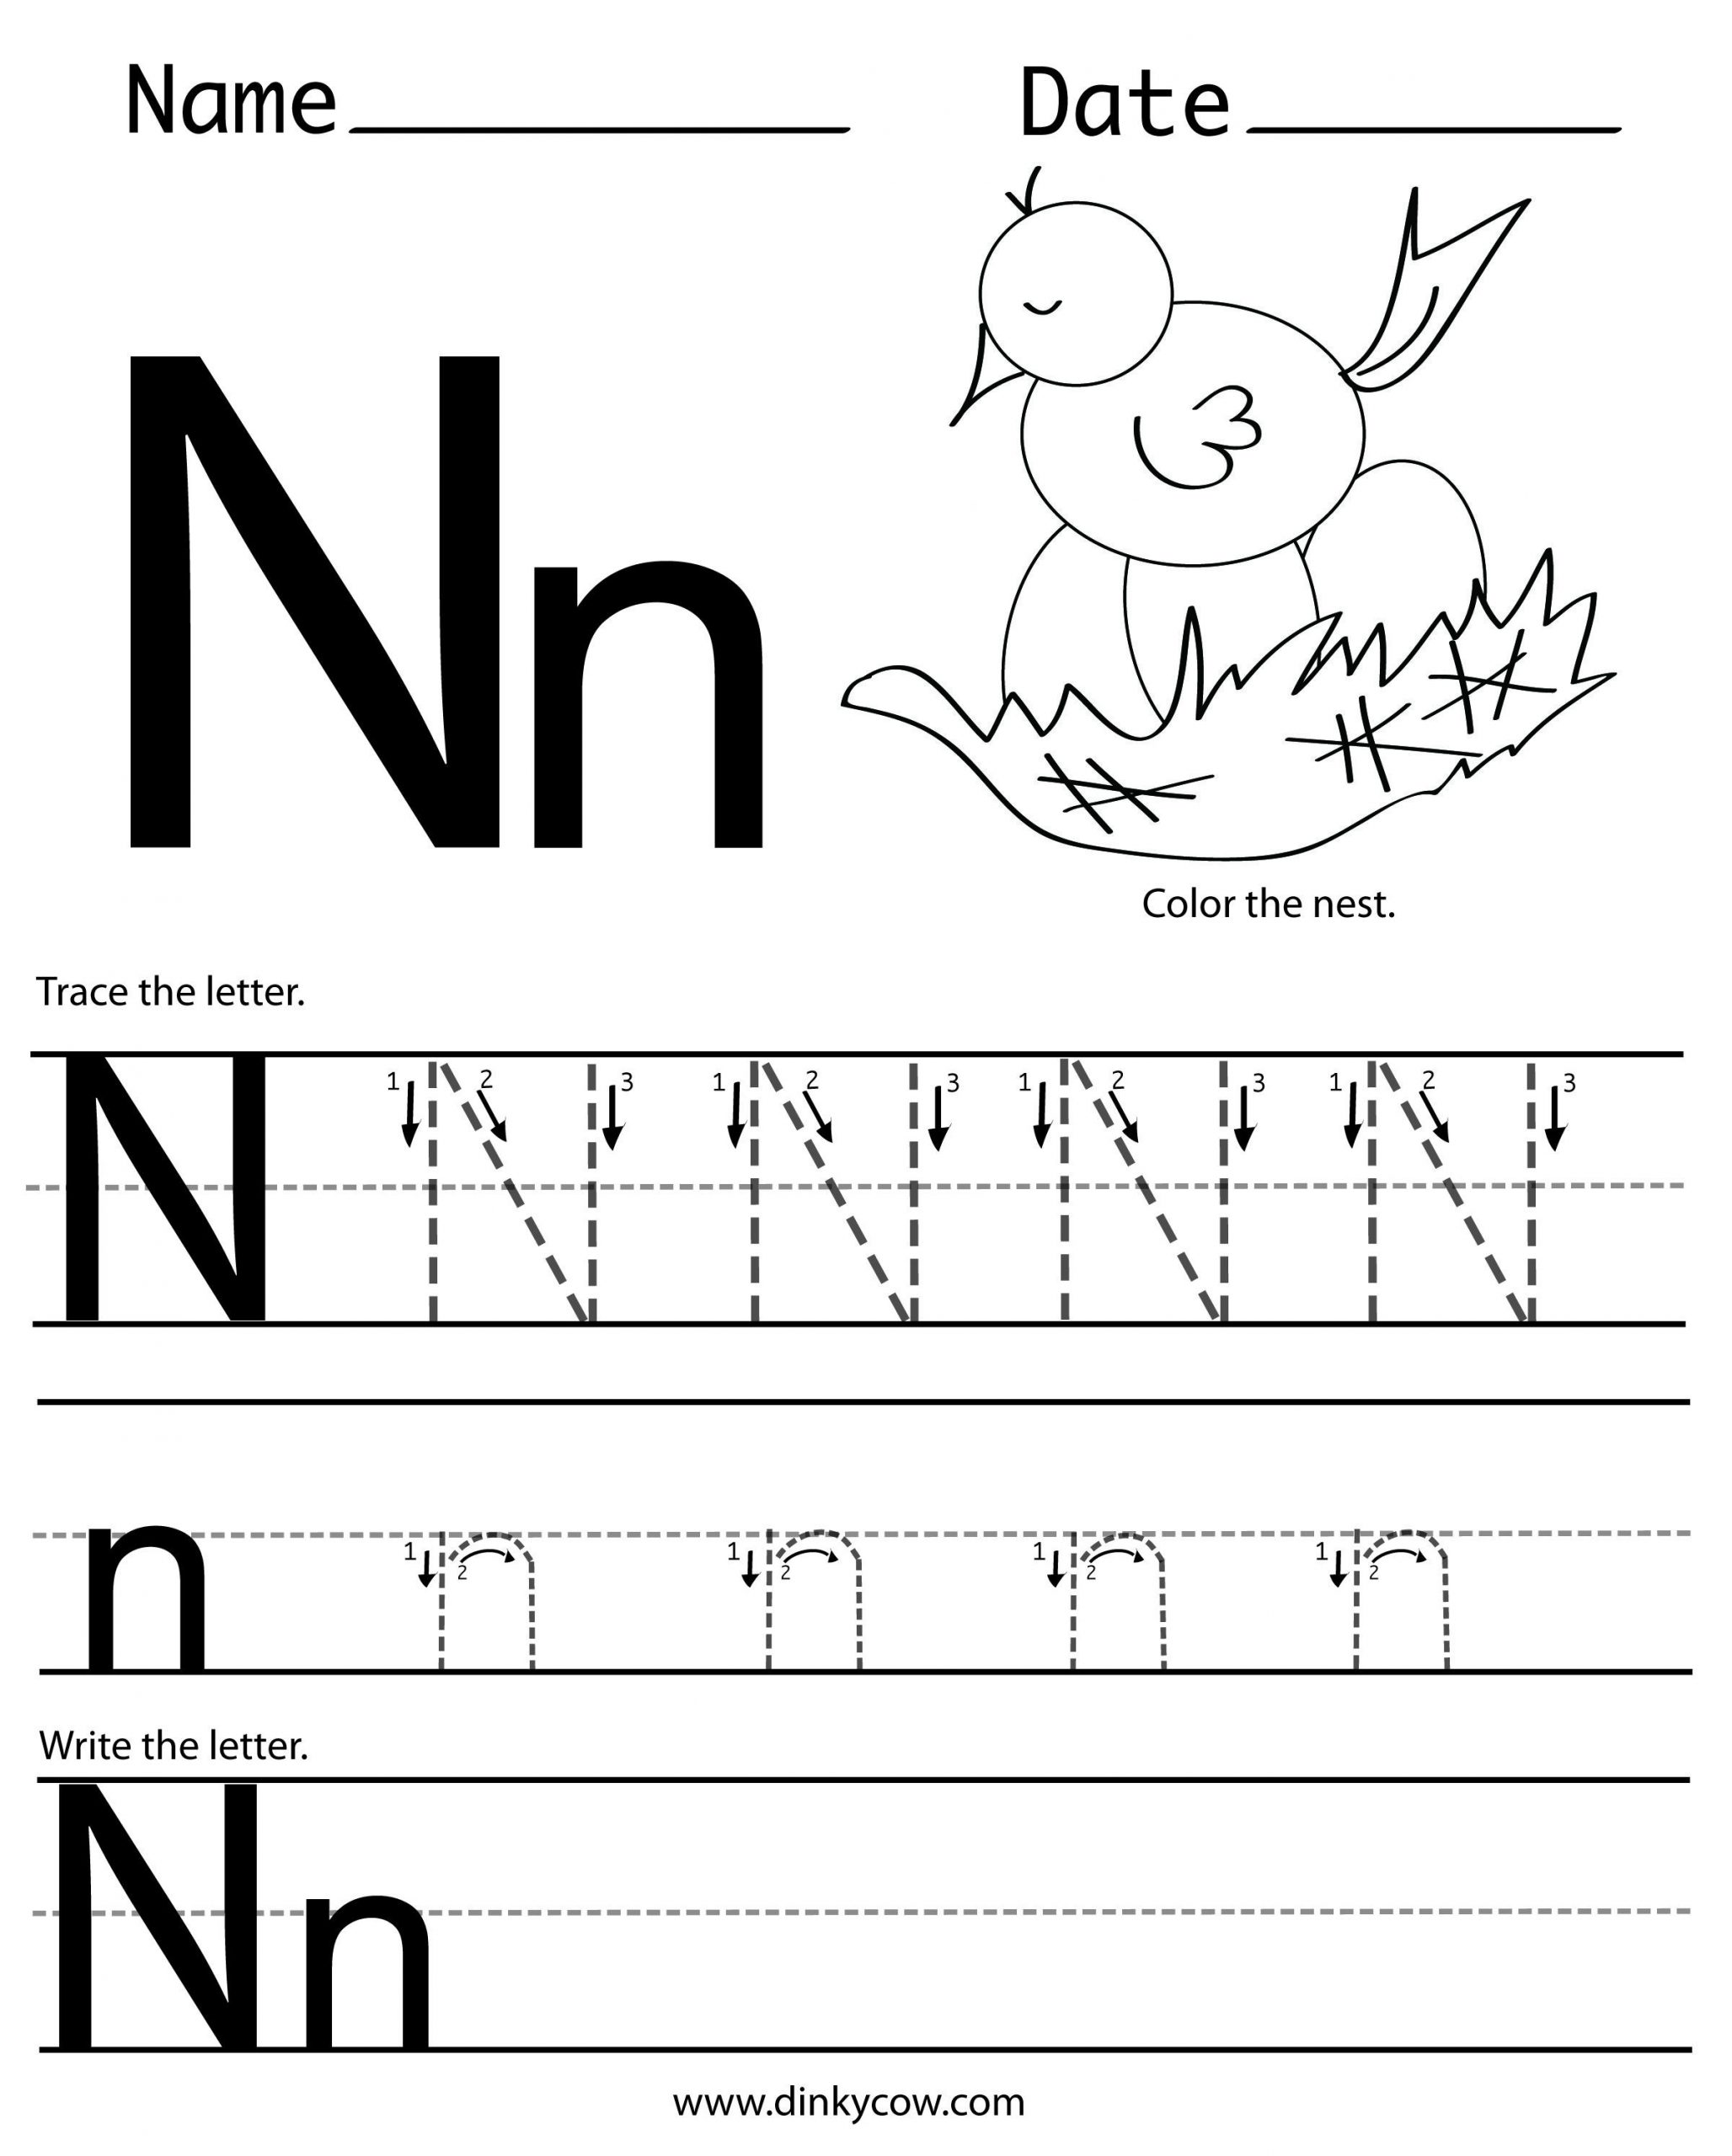 Preschool Letter N Worksheets Printable Preschool Worksheets Letter N